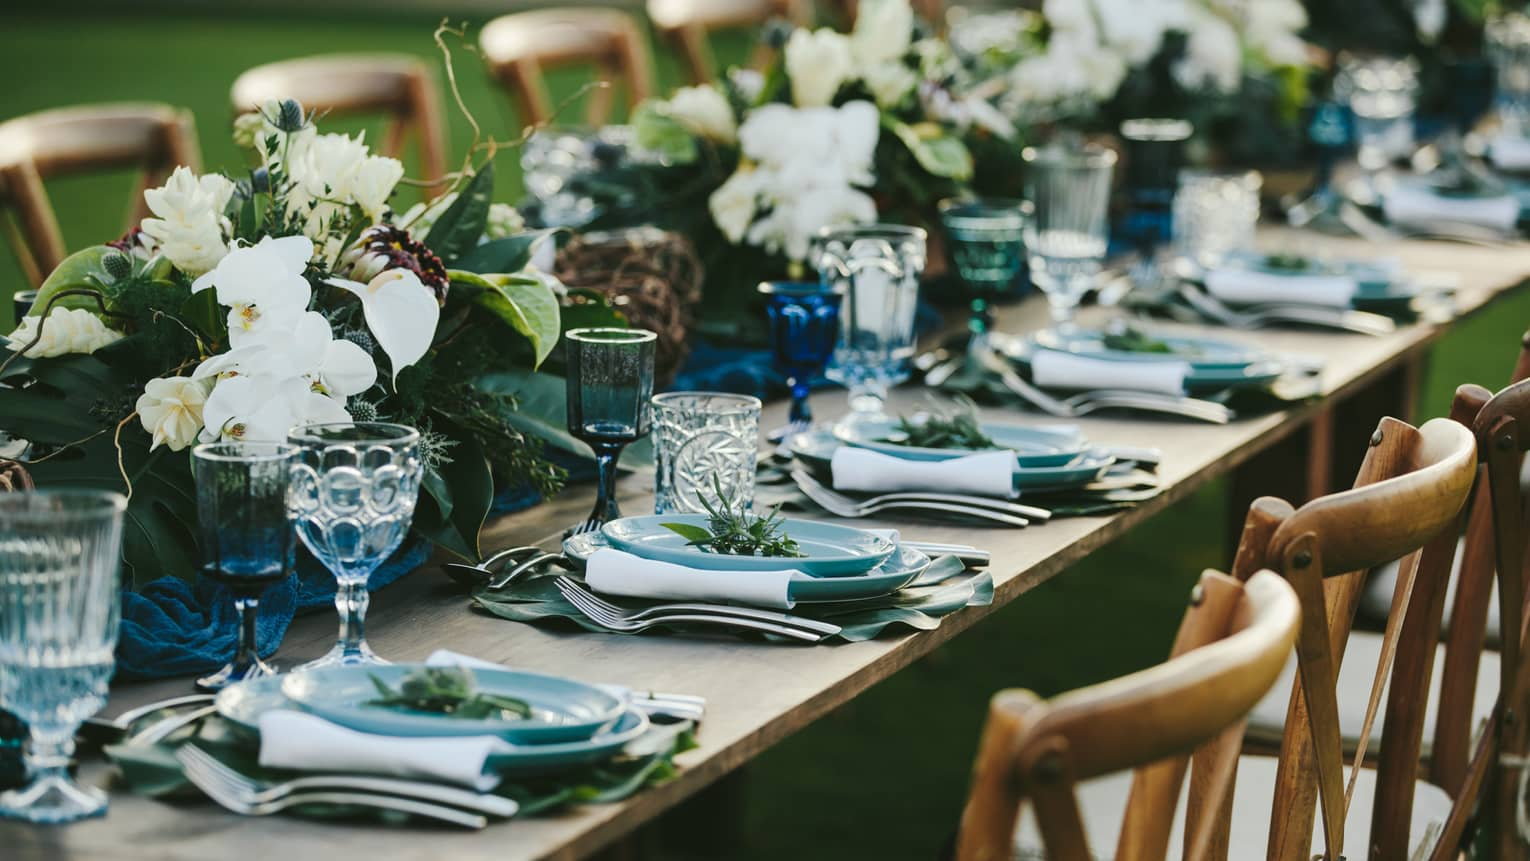 A close up of a long wooden table set with blue plates, eclectic blue and clear glassware, white napkins and green and white floral arrangements all the way down the center of the table